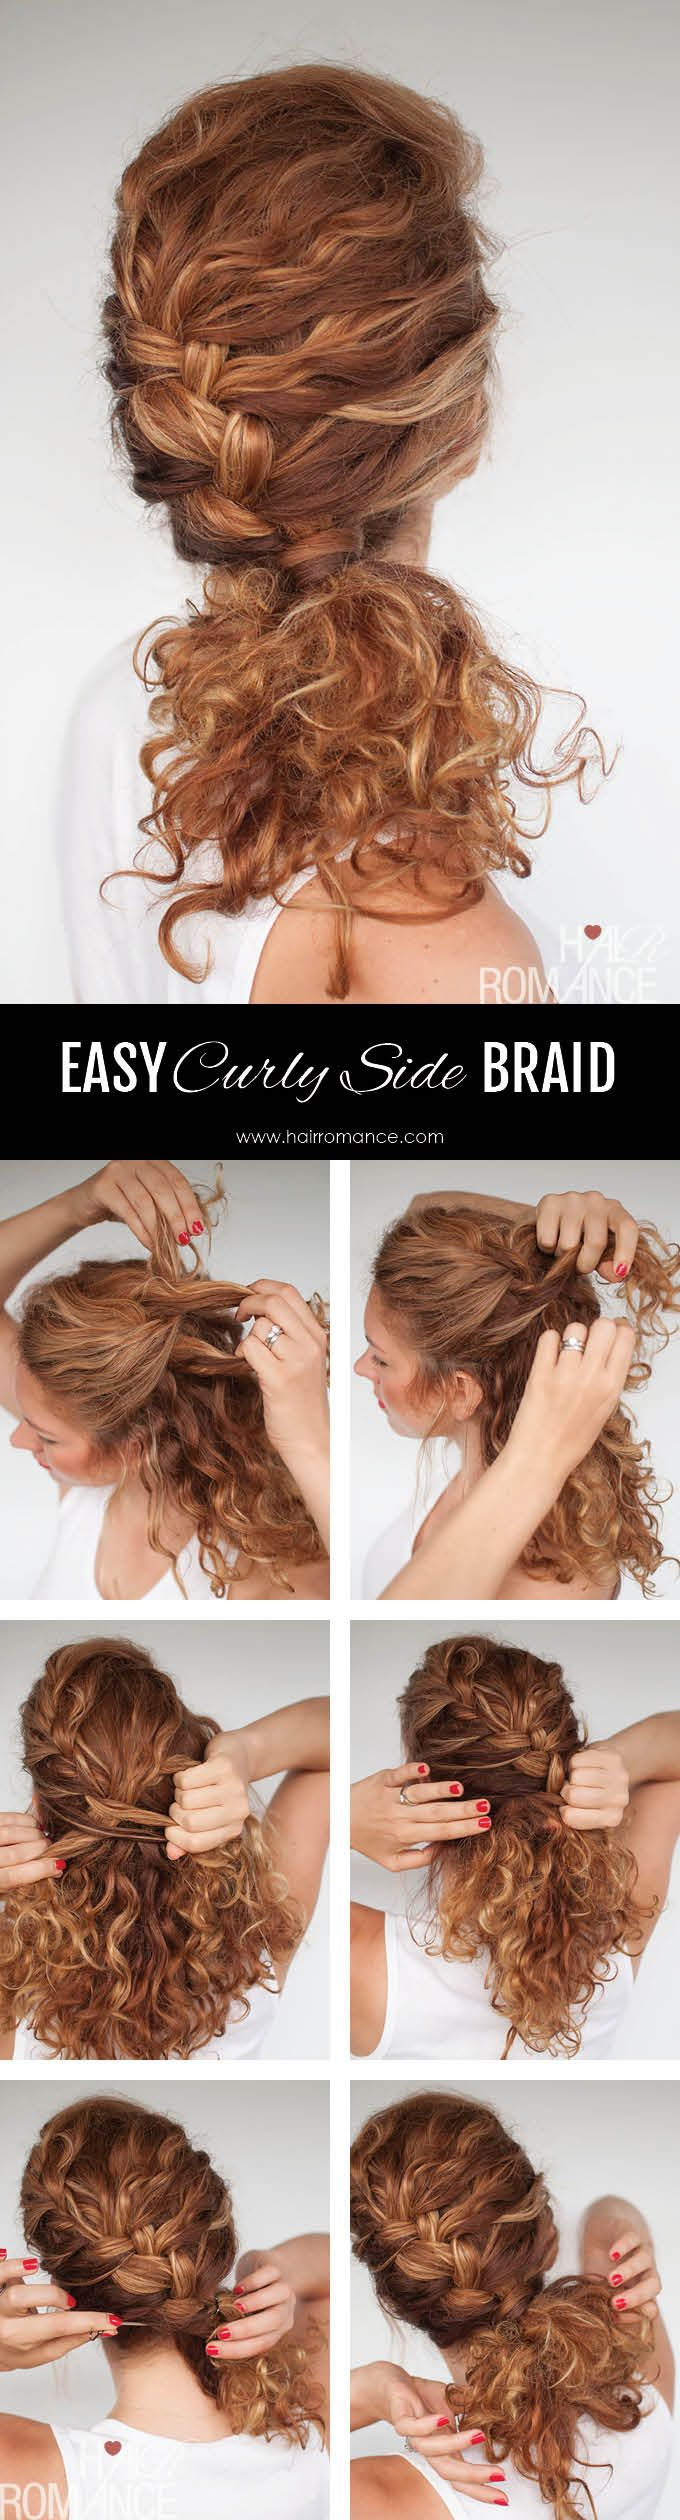 Fine 1000 Ideas About Easy Curly Hairstyles On Pinterest Hair Tricks Hairstyle Inspiration Daily Dogsangcom